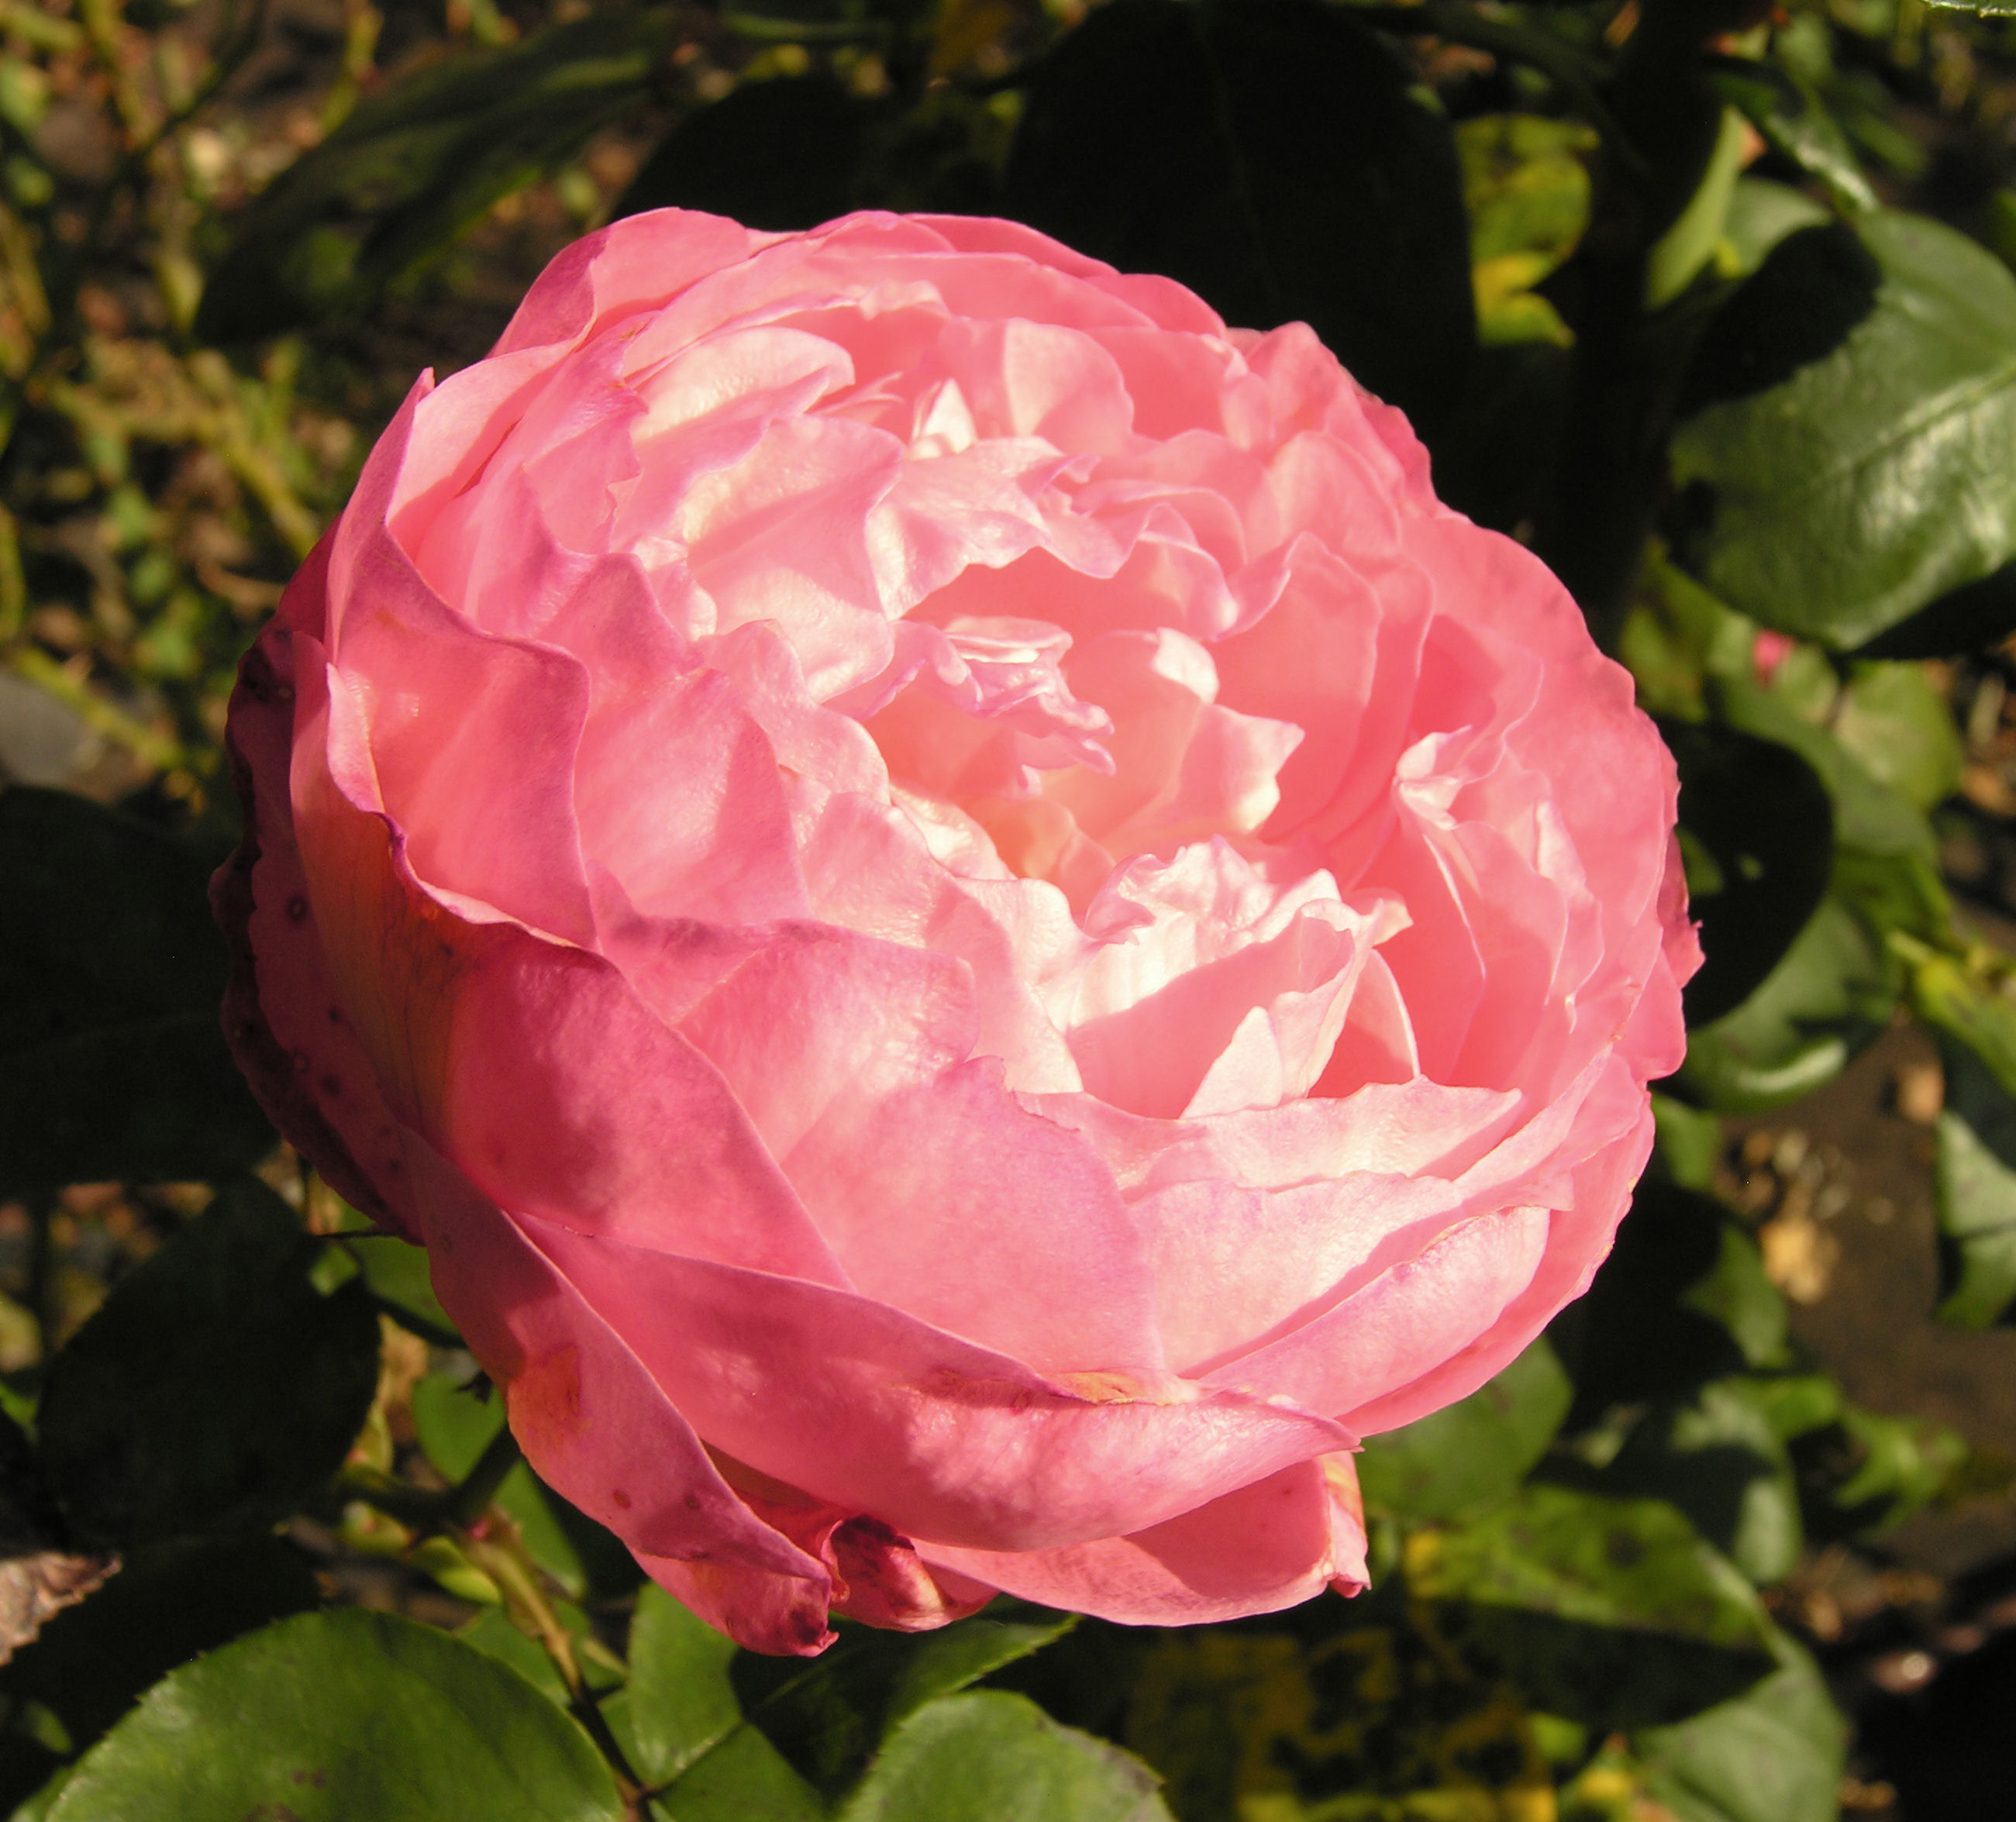 Rosa 39 panth re rose - Rosier panthere rose ...